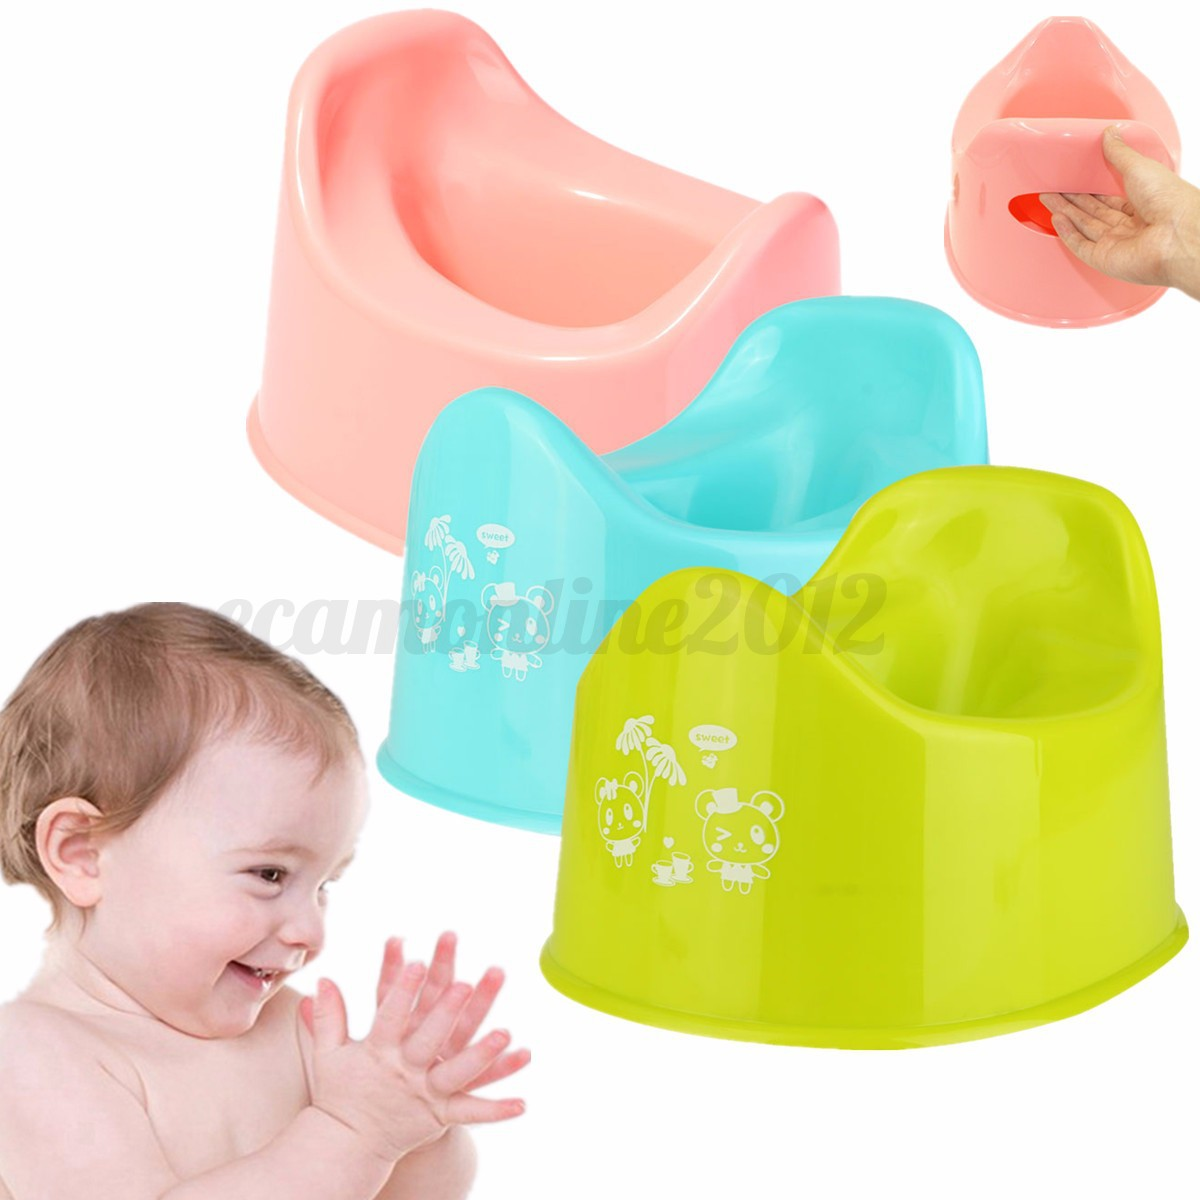 Potty Chairs For Toddlers Baby Child Kids Toddler Toilet Training Steady Potty Seat